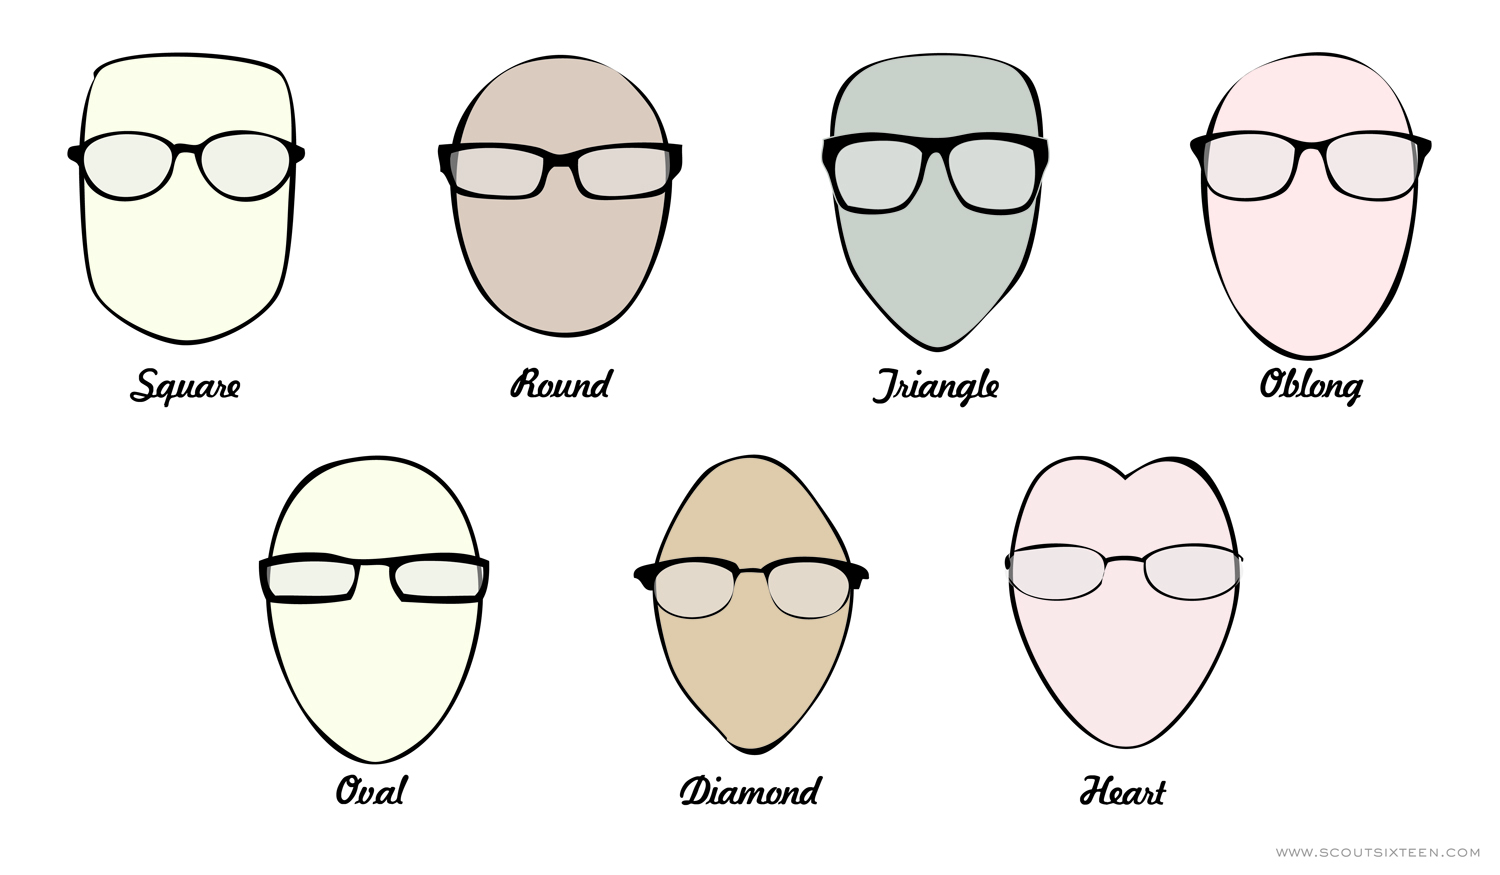 Best Glasses Frame For A Long Face : Eyewear Guide: How to Choose the Correct Frames For Your ...